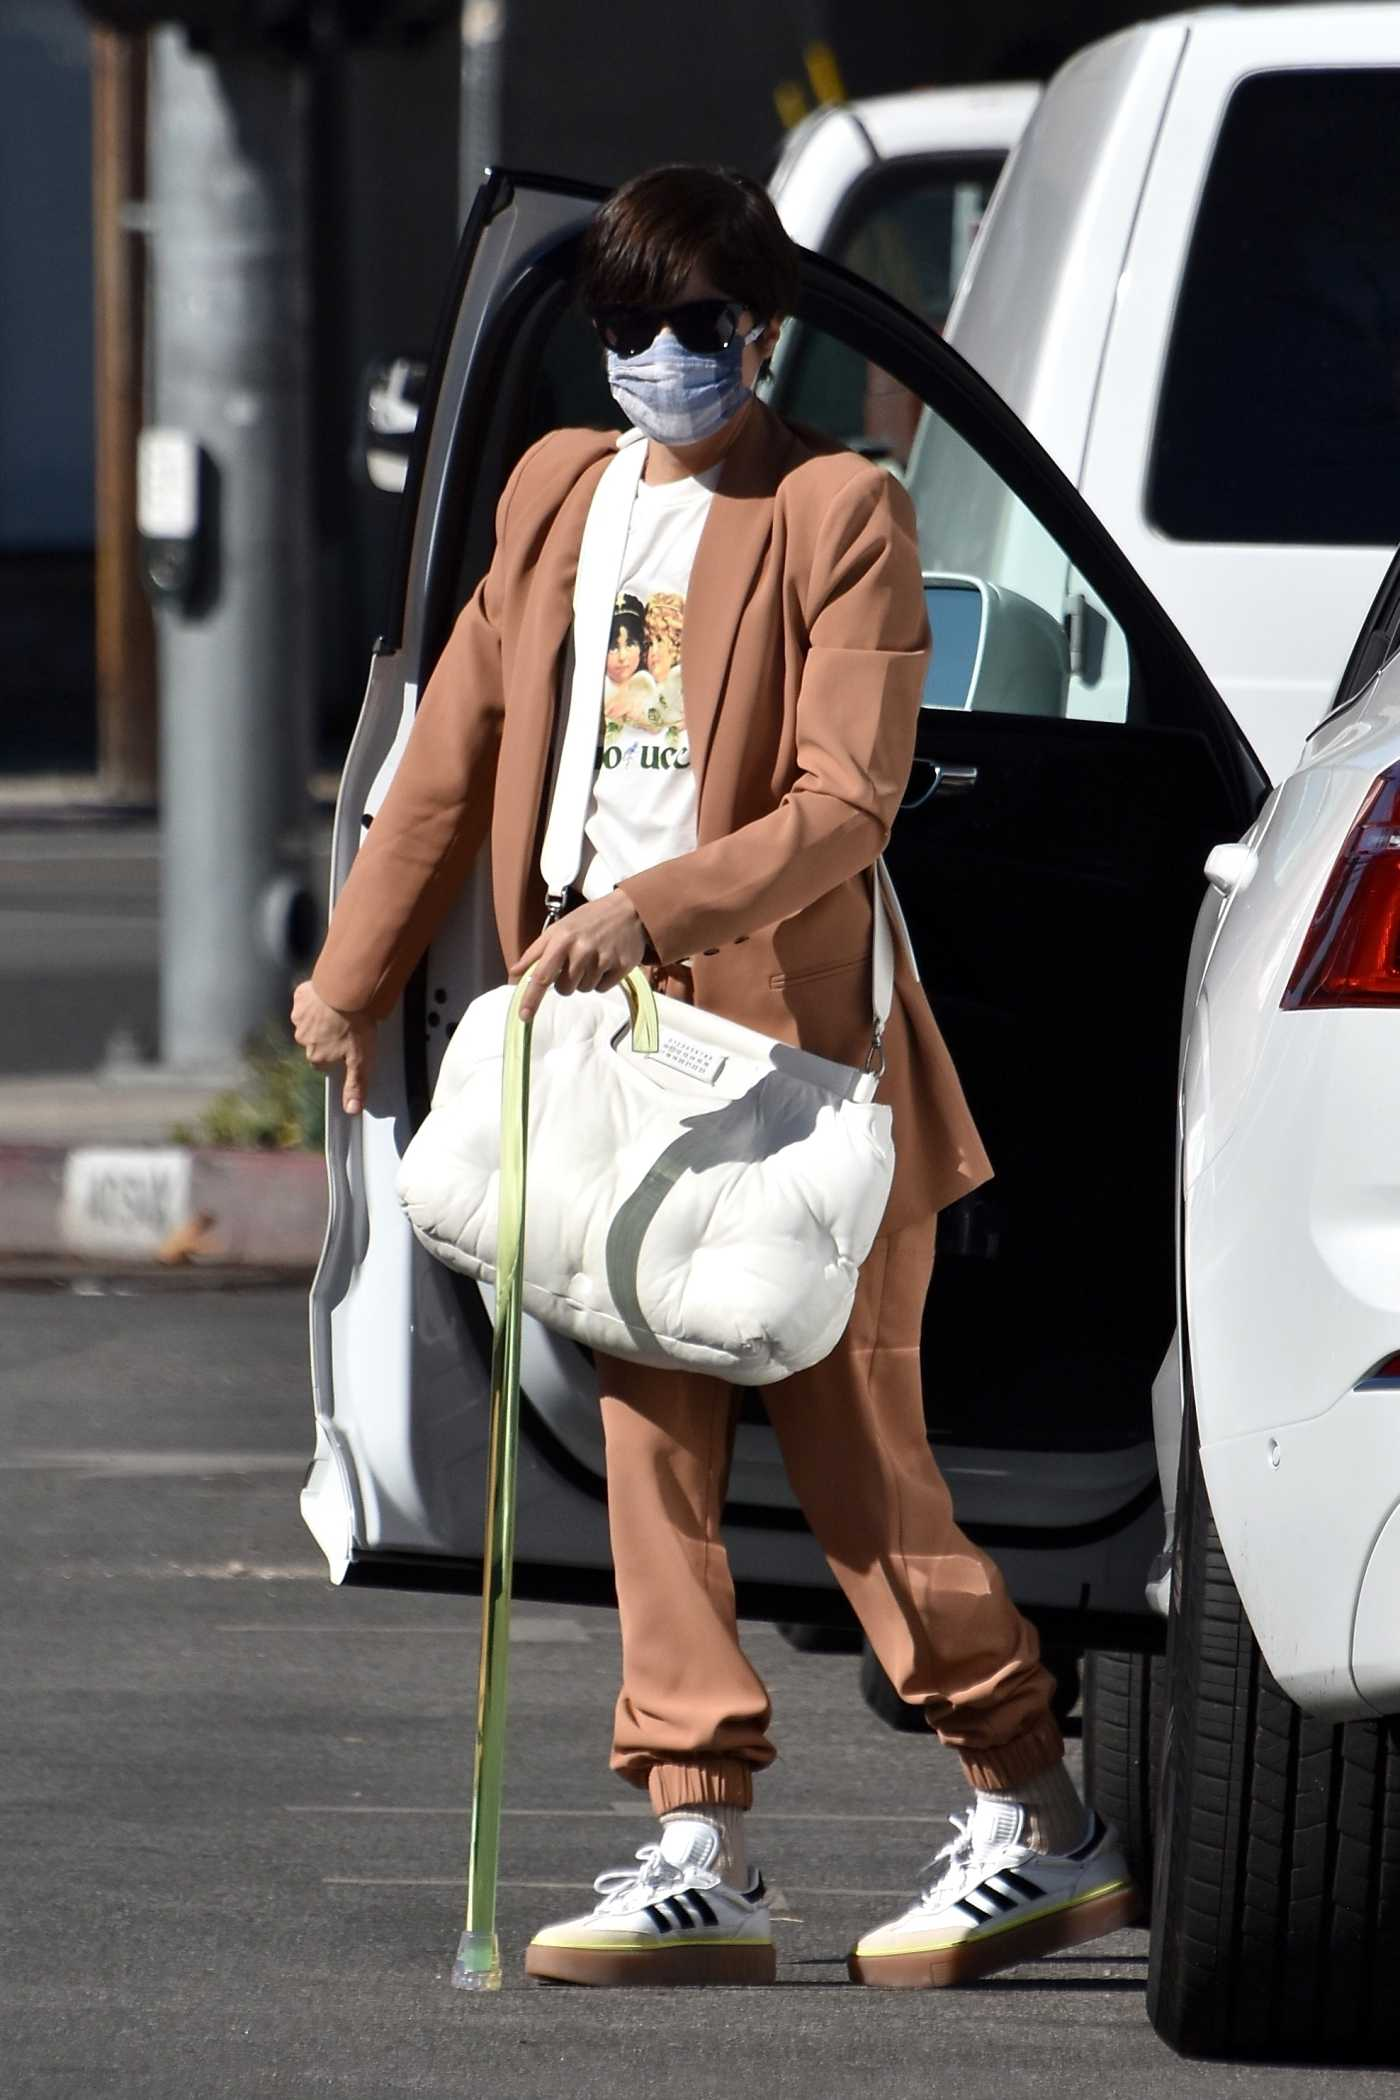 Selma Blair in a Tan Suit Was Seen Out in Studio City 01/24/2021